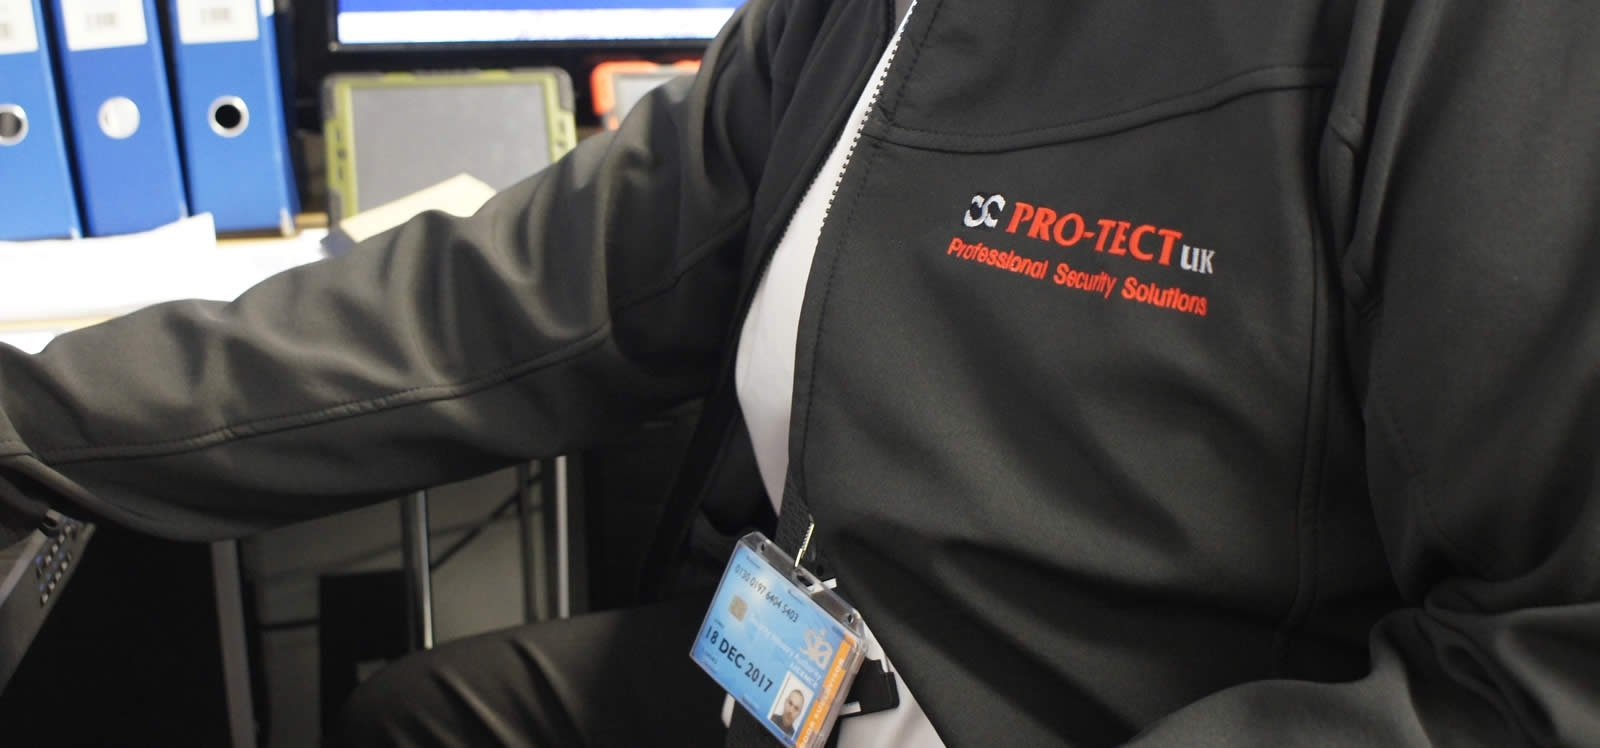 Contact Pro-Tect UK Security and Training